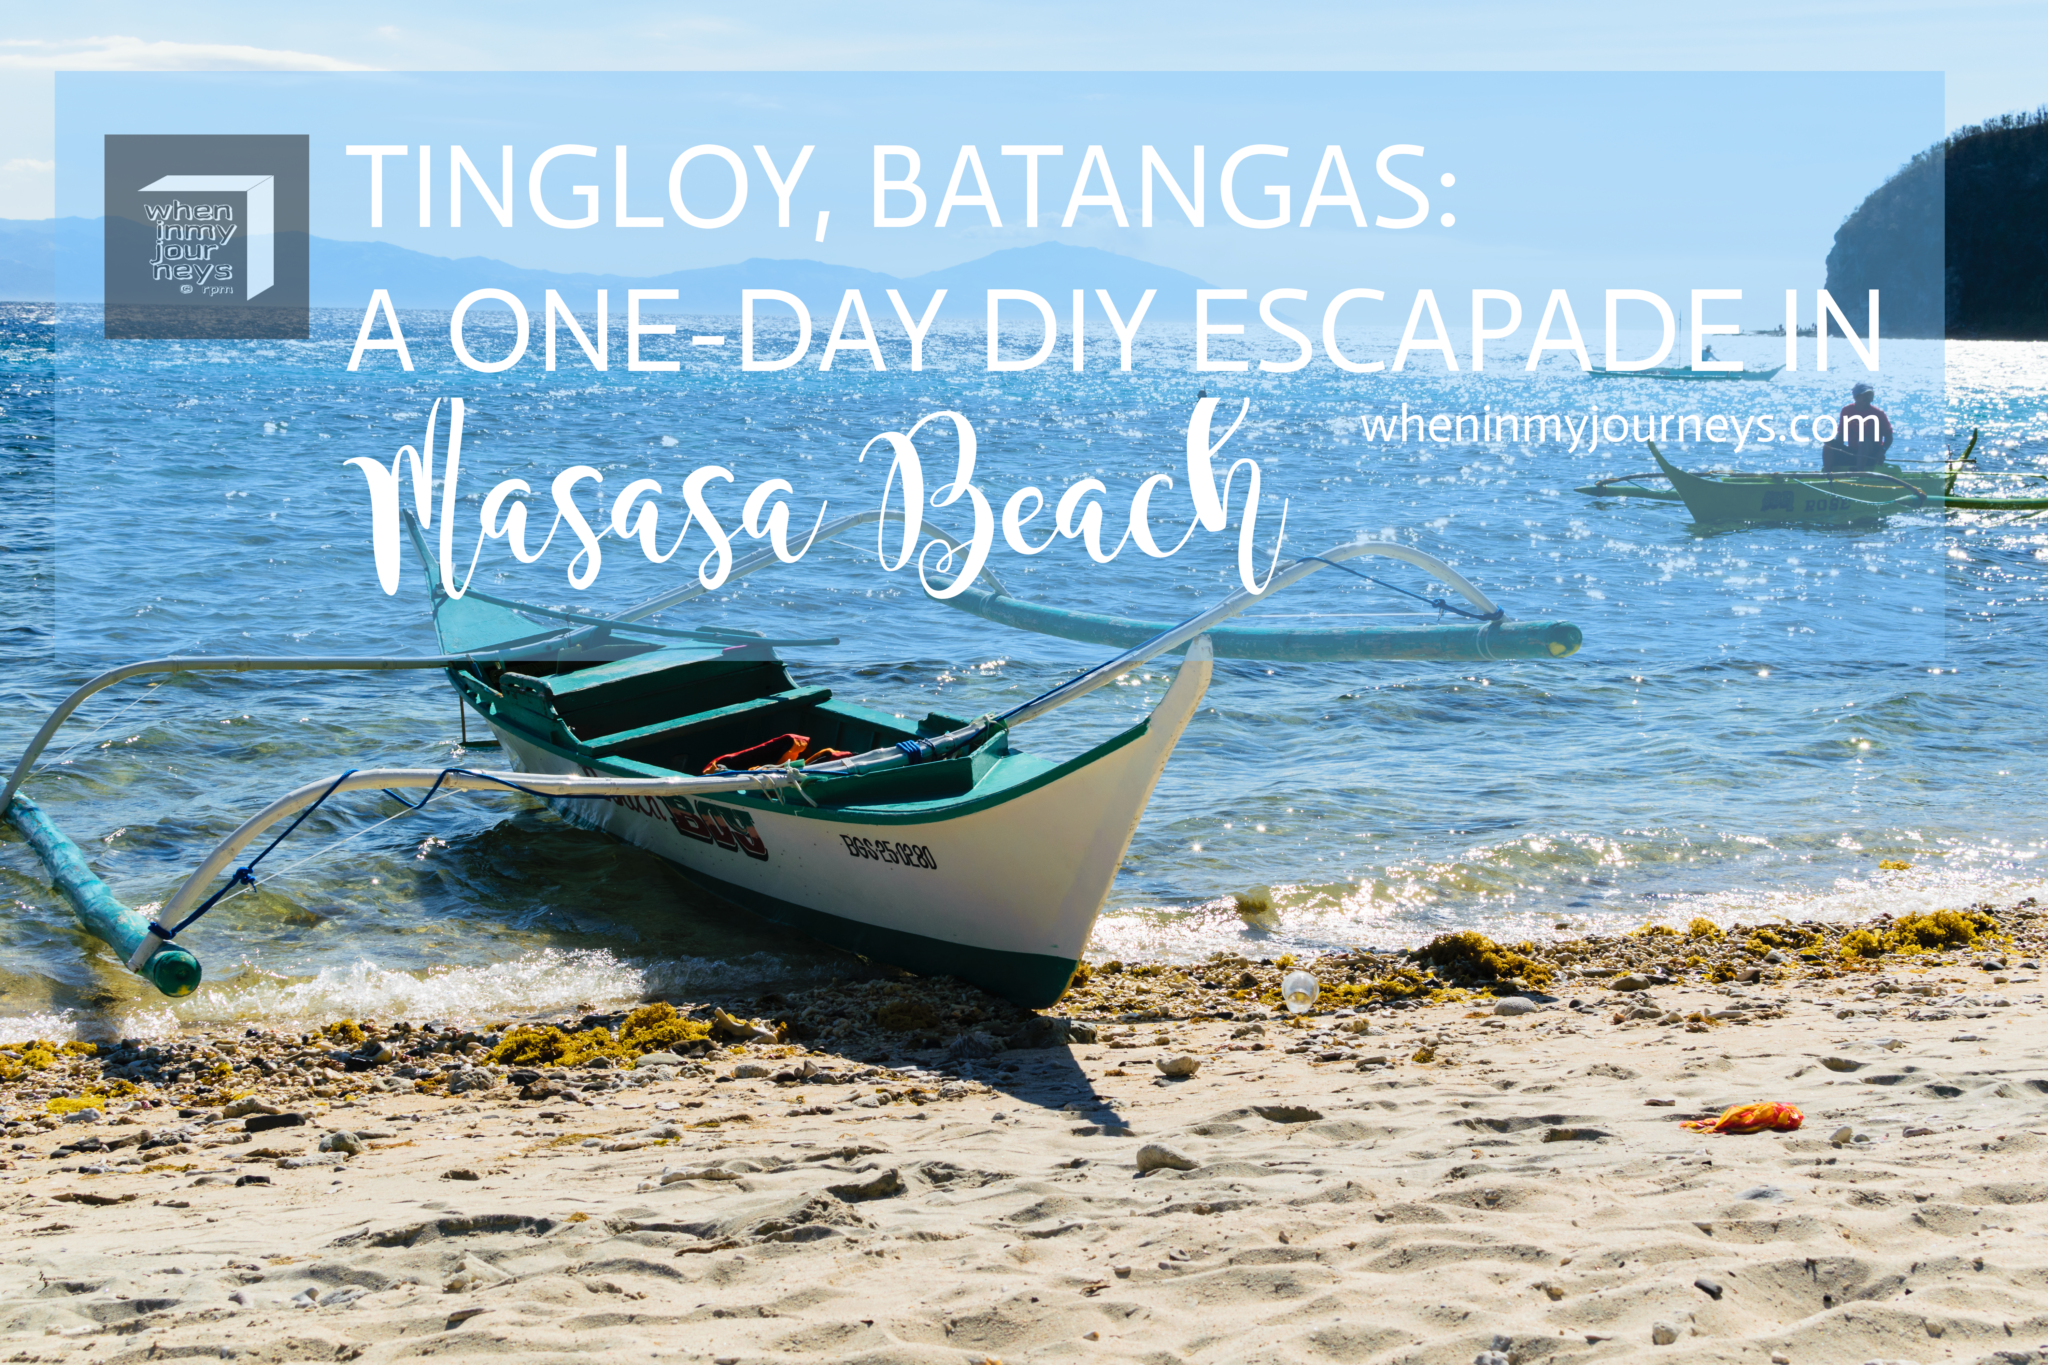 Tingloy Batangas - A One-Day DIY Escapade in Masasa Beach